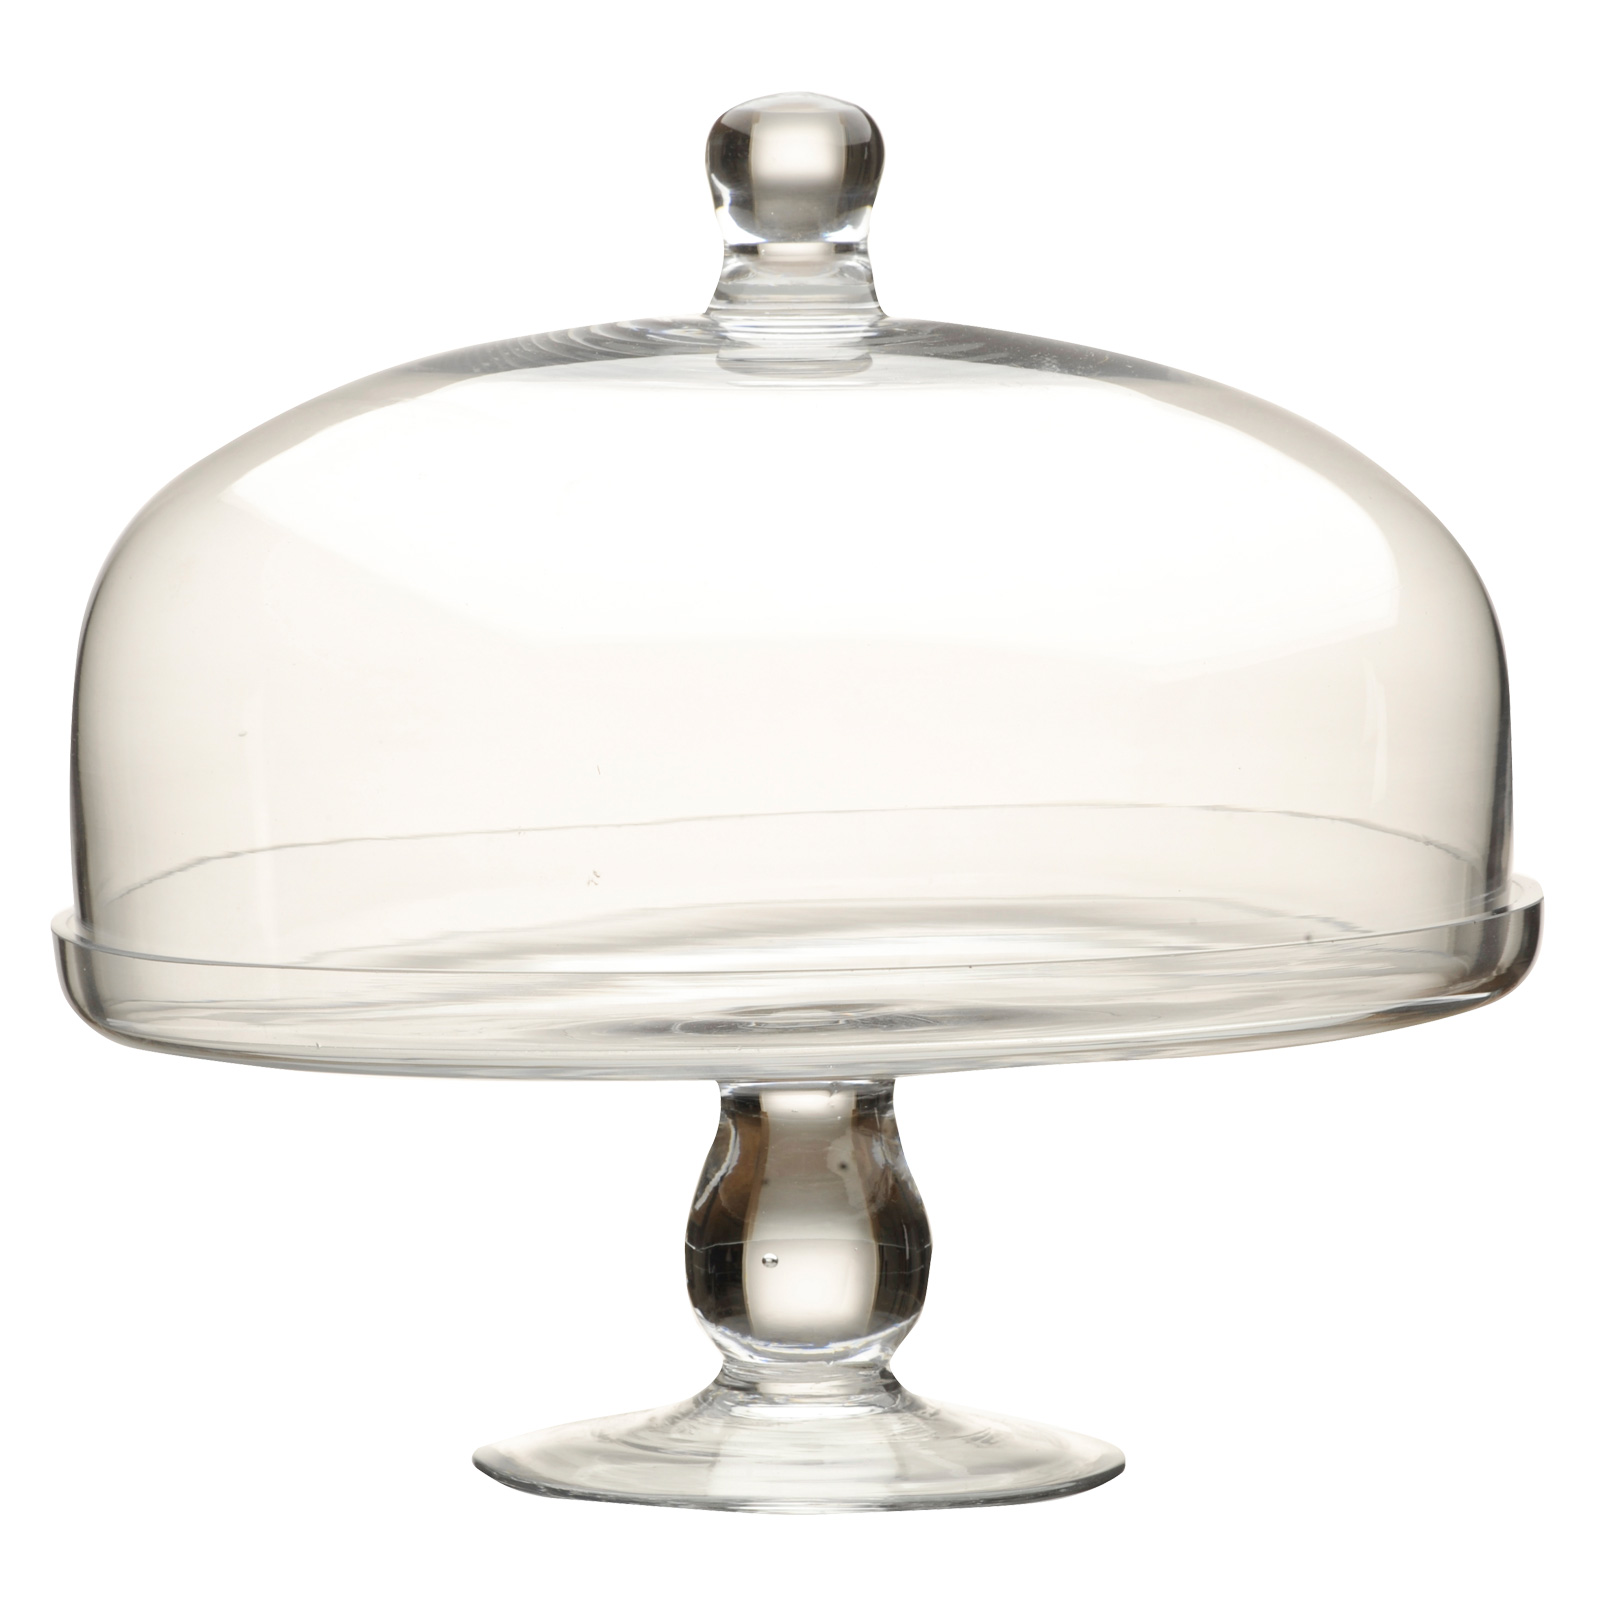 Simplicity Cake Stand with Round Dome  by Artland